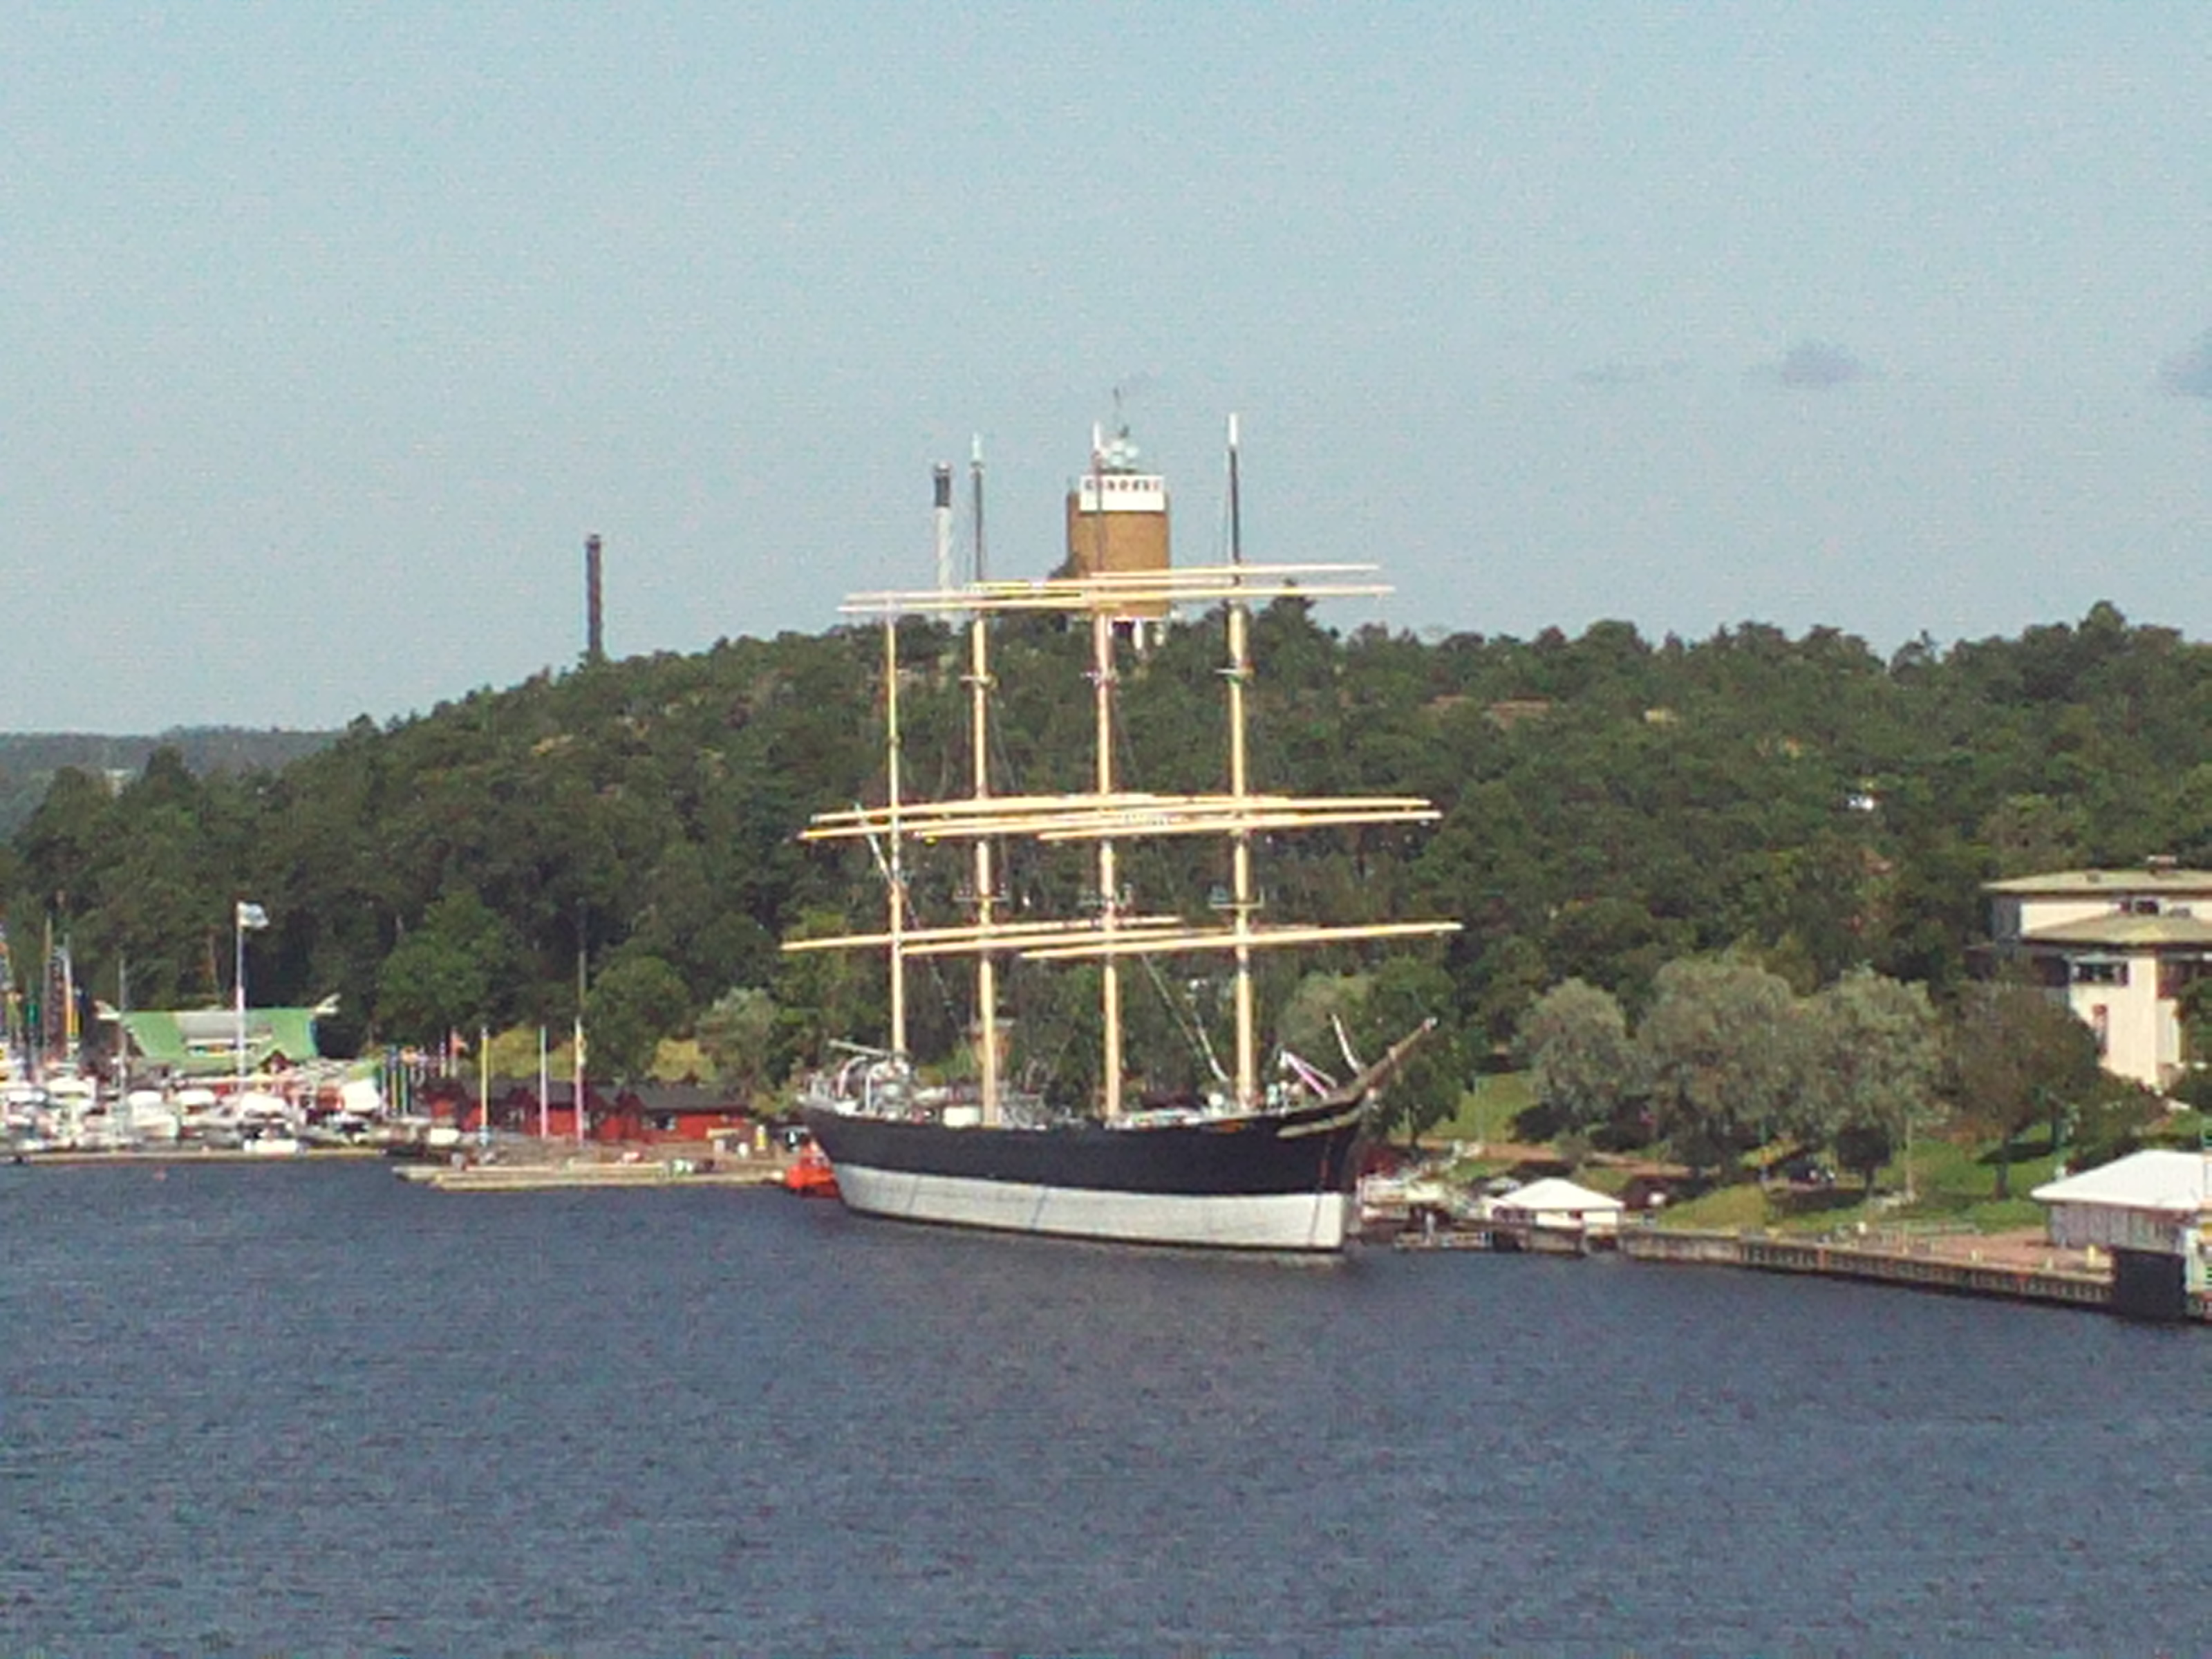 The four-masted barque Pemmern moored at the Åland Maritime Museum in Mariehamn. Photo taken on July 29, 2009.